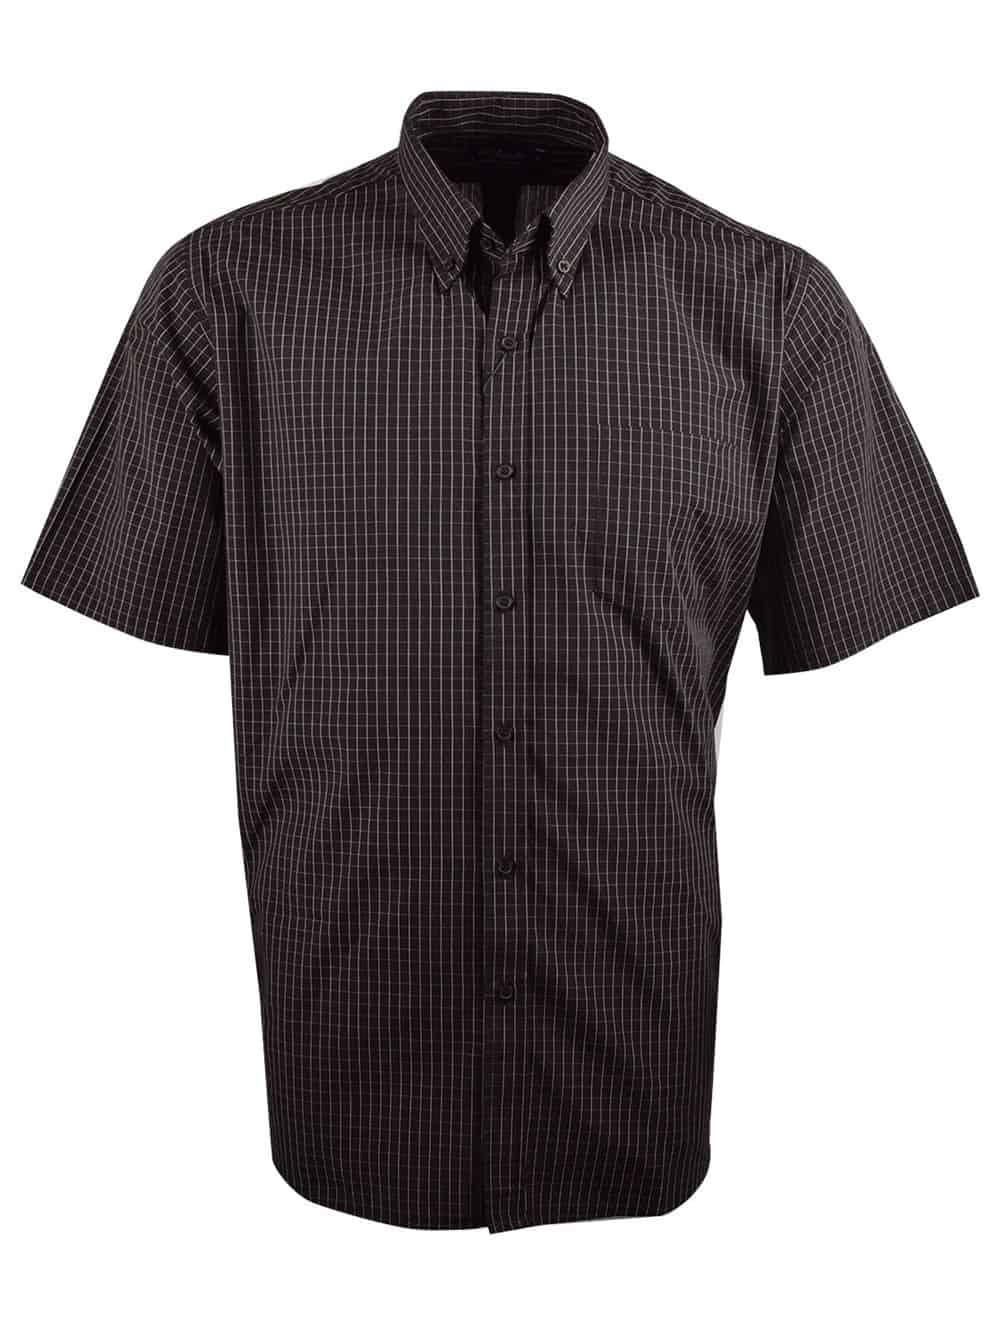 Checked Shirt WS09S Lounge Shirts and Blouses